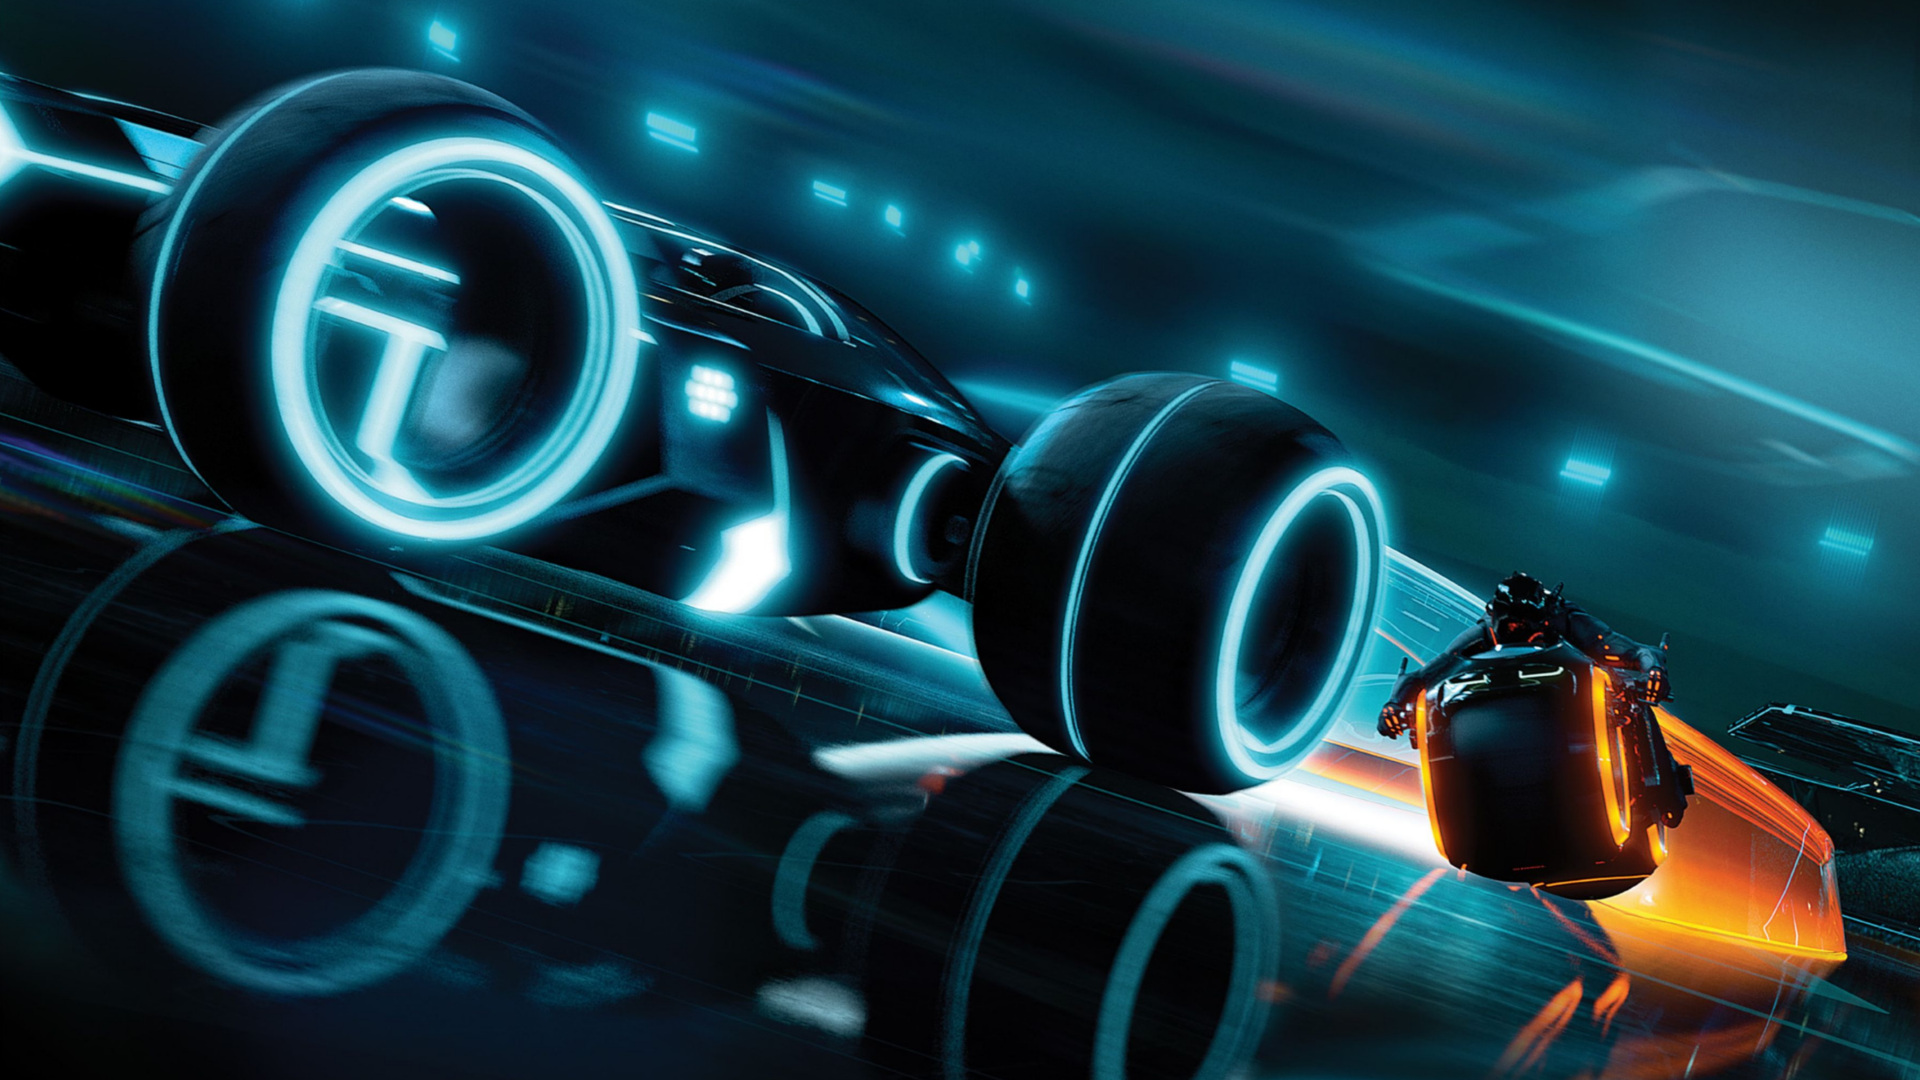 tron: legacy wallpapers, pictures, images